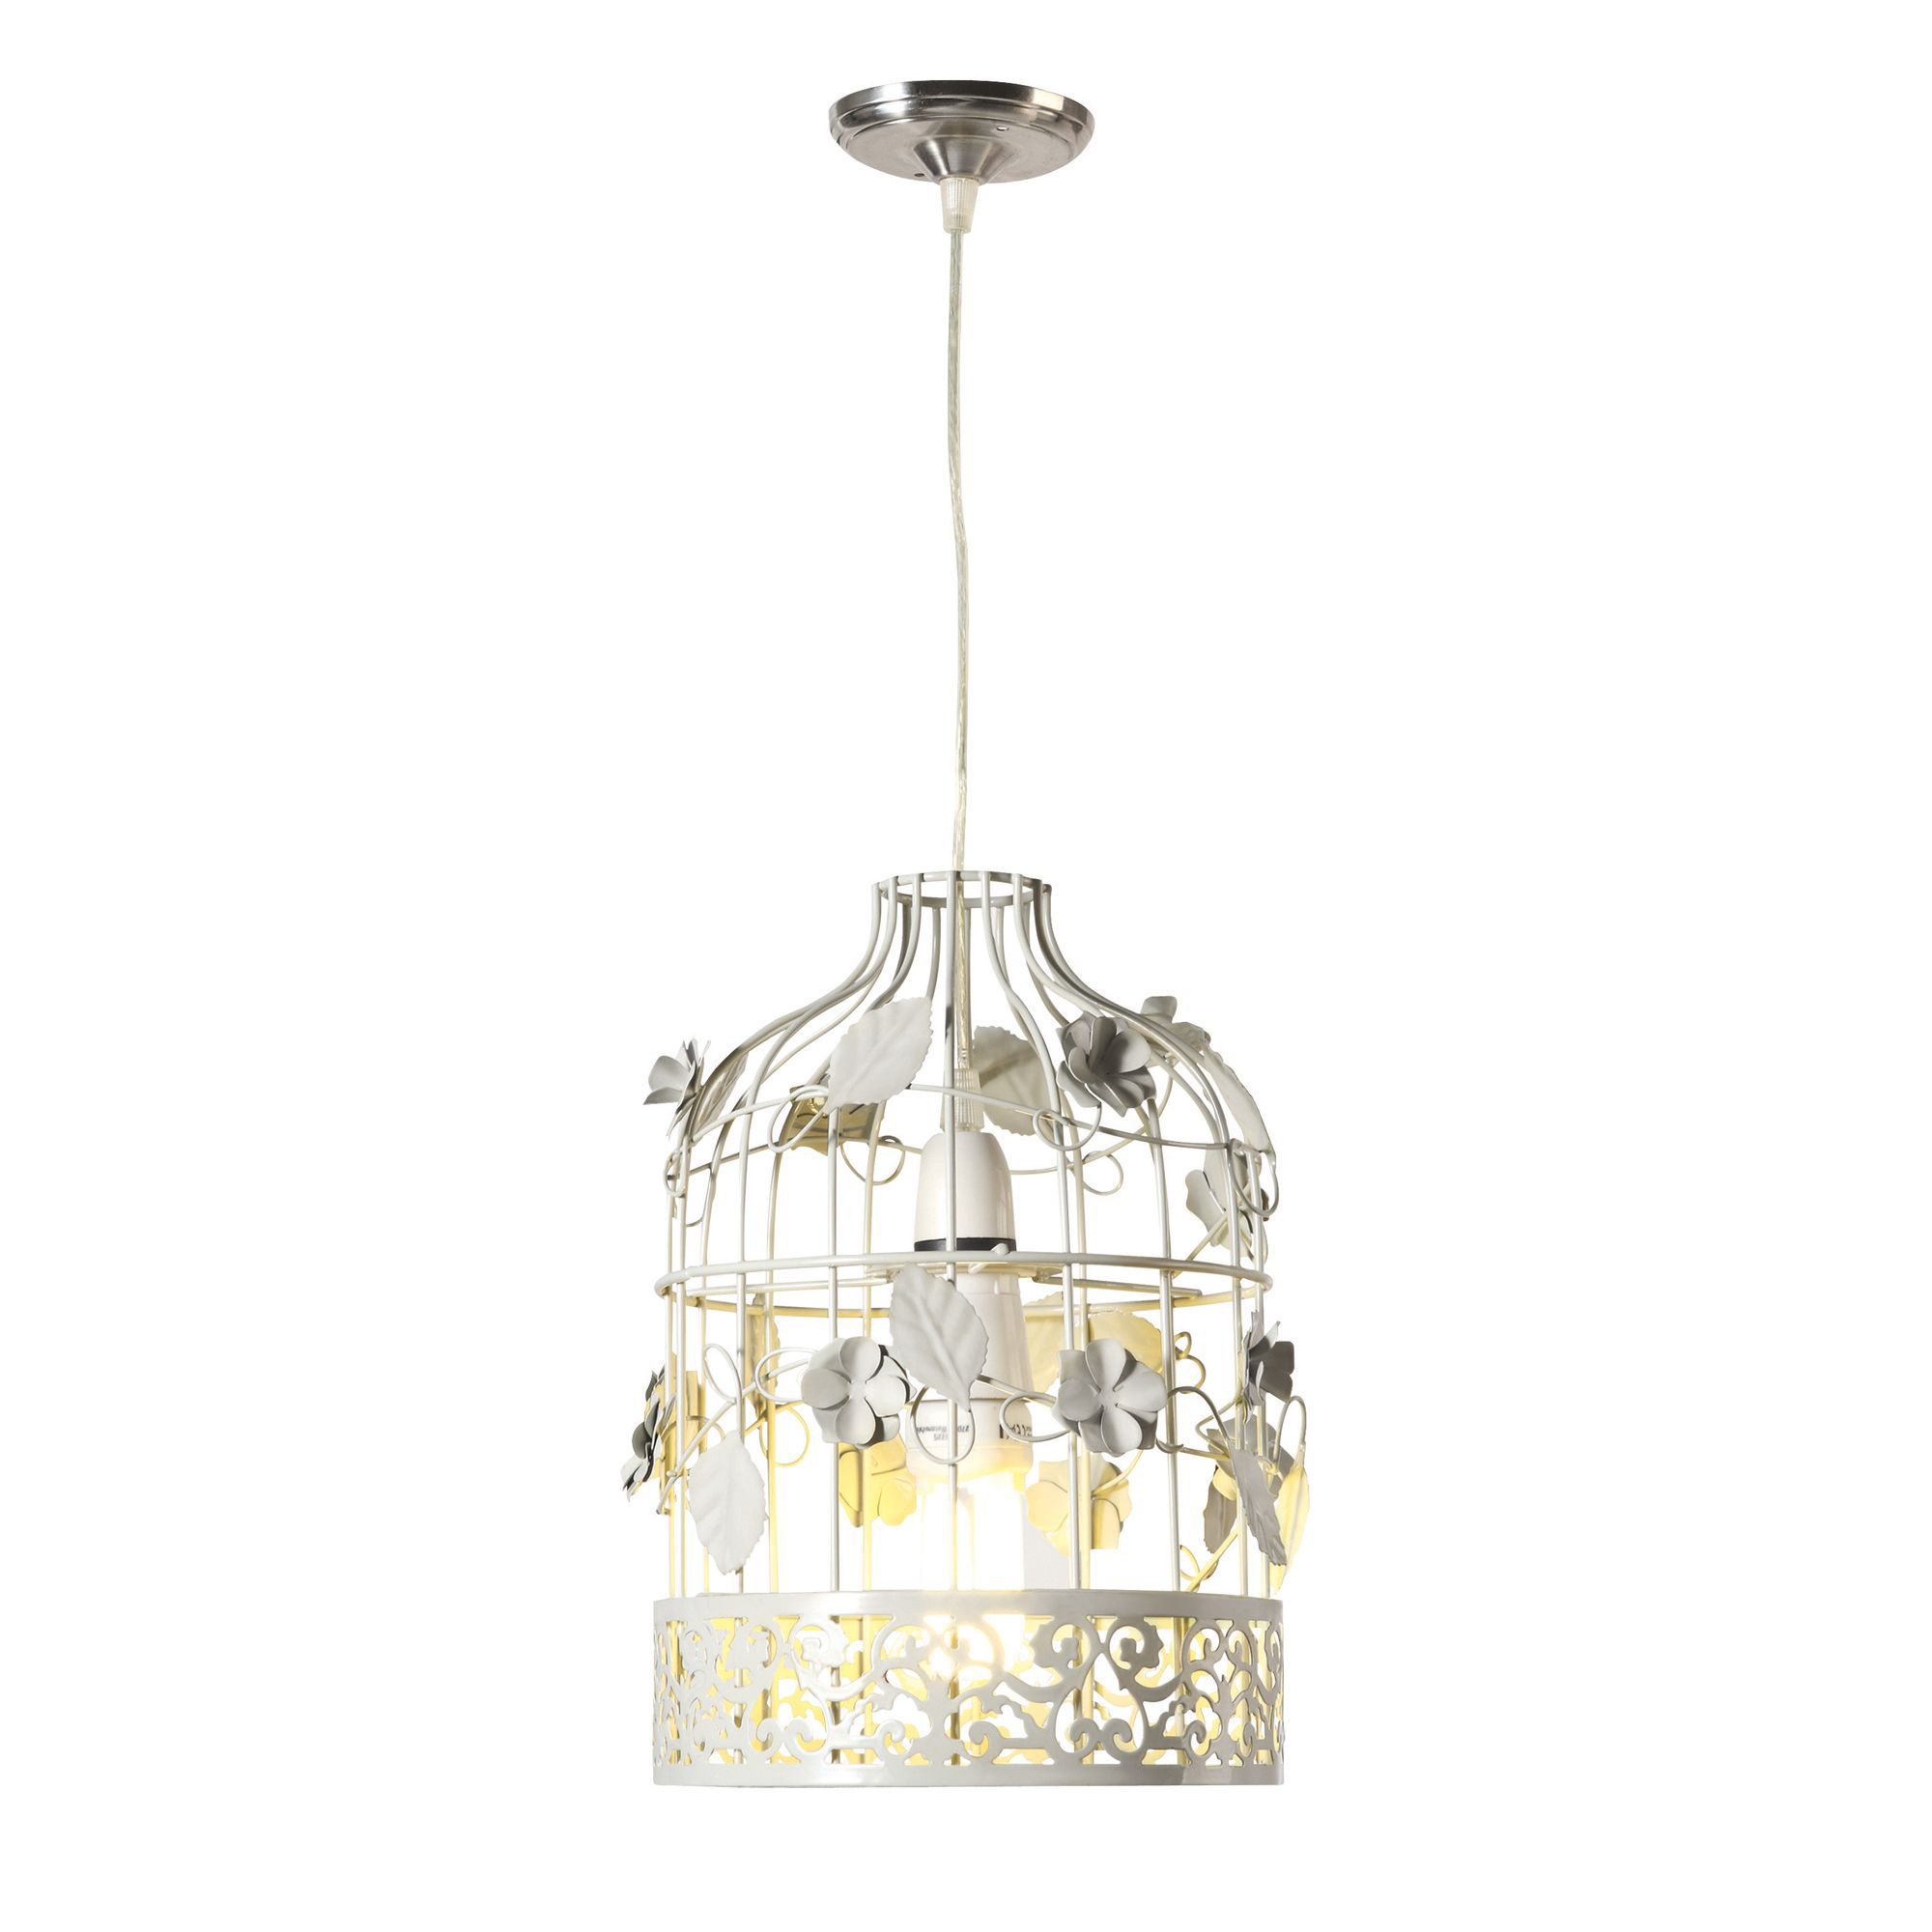 bird cage lighting. Luella Cream Birdcage With Flowers Light Shade (D)195mm | Departments DIY At B\u0026Q Bird Cage Lighting I